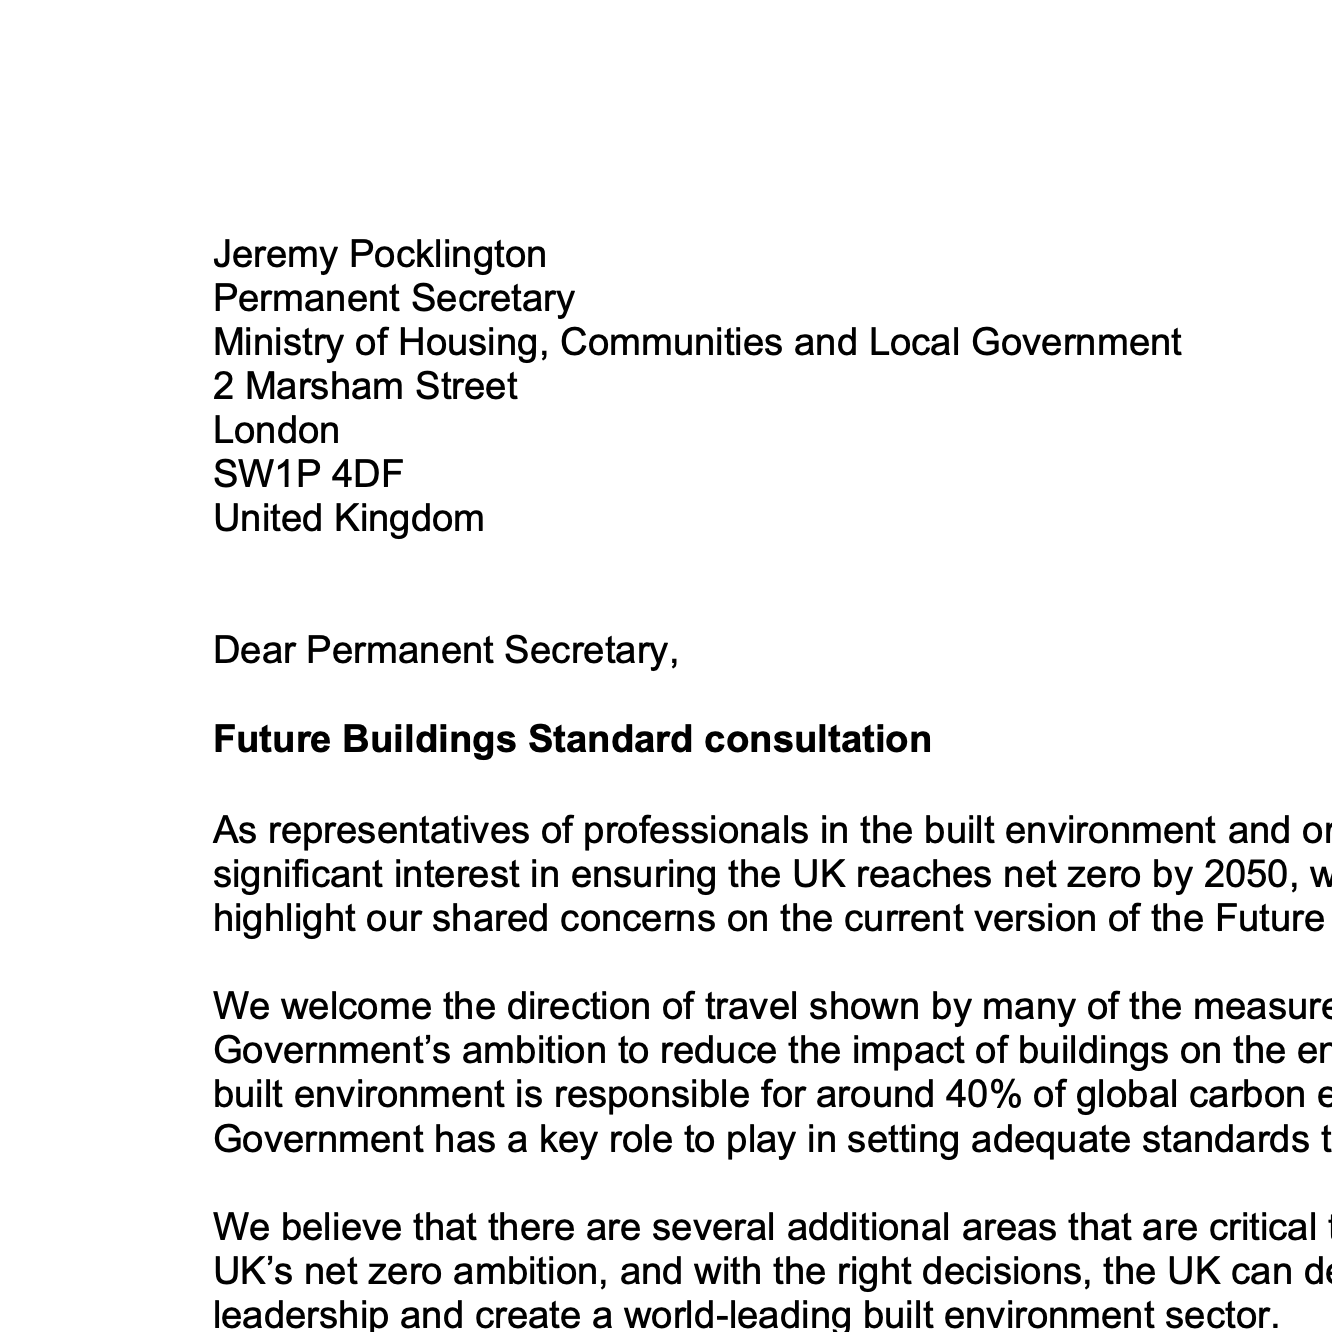 Future Buildings Standard and letter to MHCLG